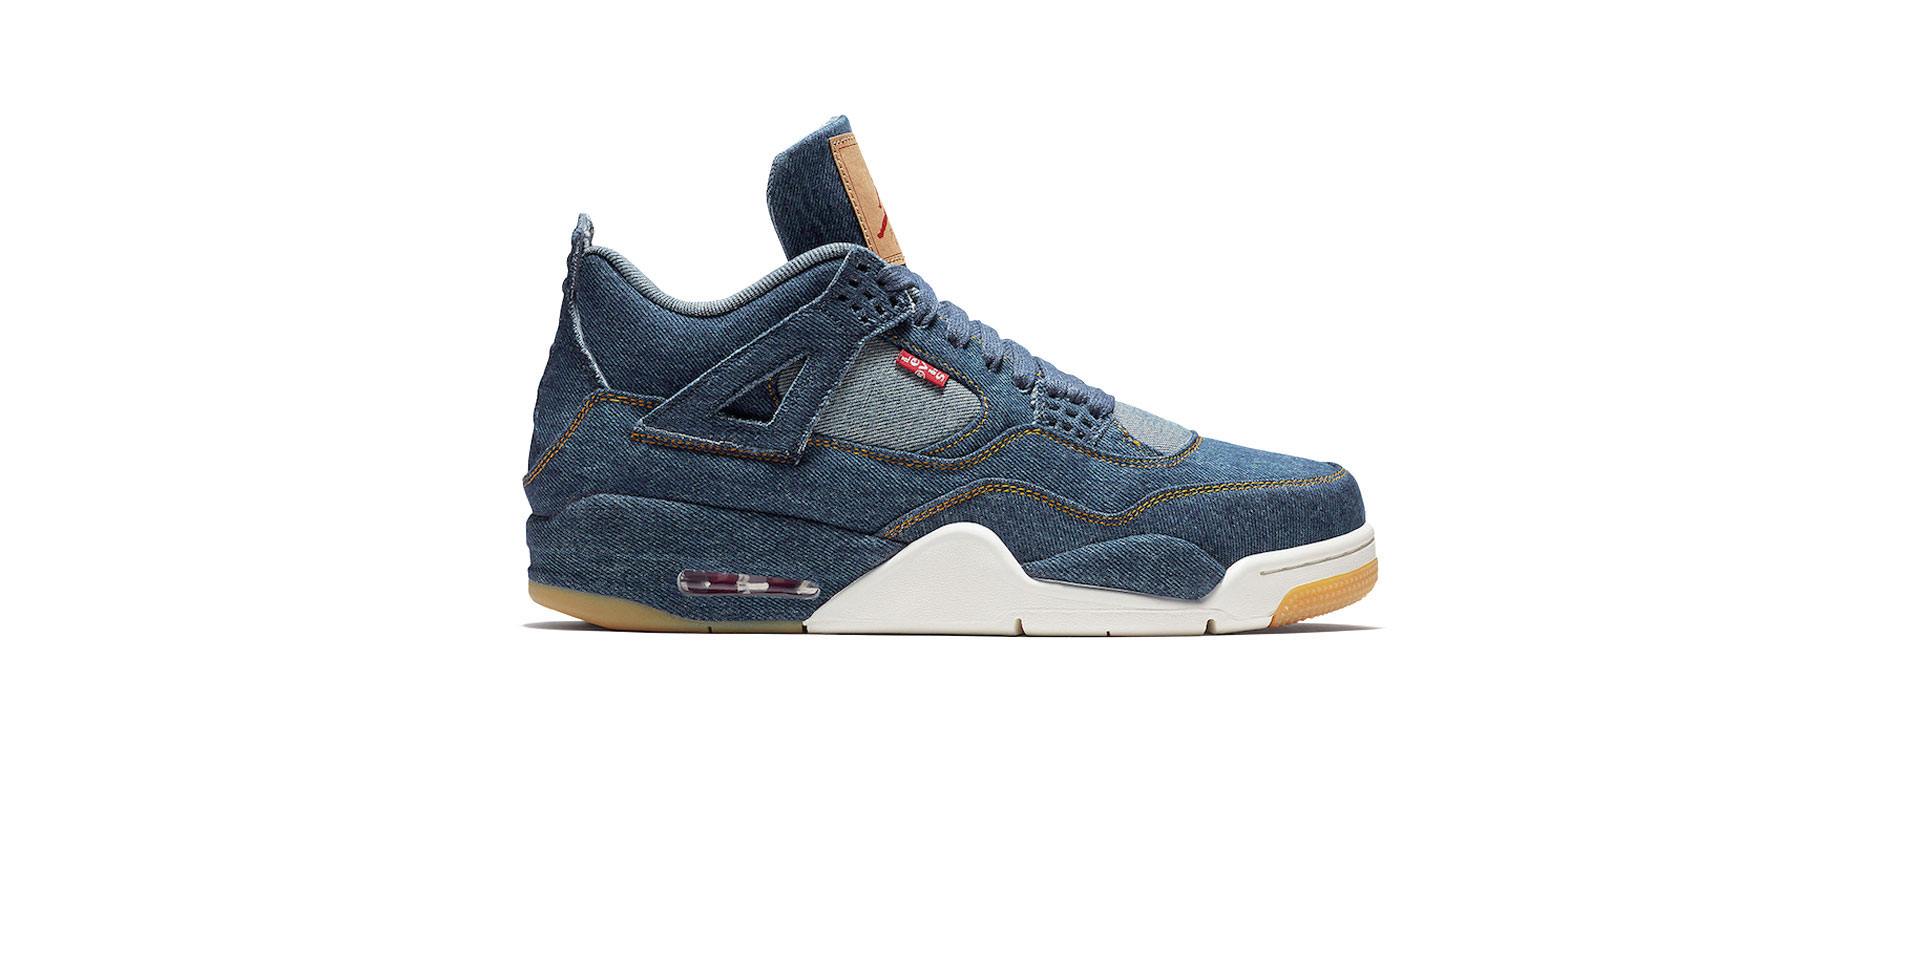 AIR JORDAN 4 RETRO X LEVIS NRG – DENIM/DENIM-SAIL-GAME RED